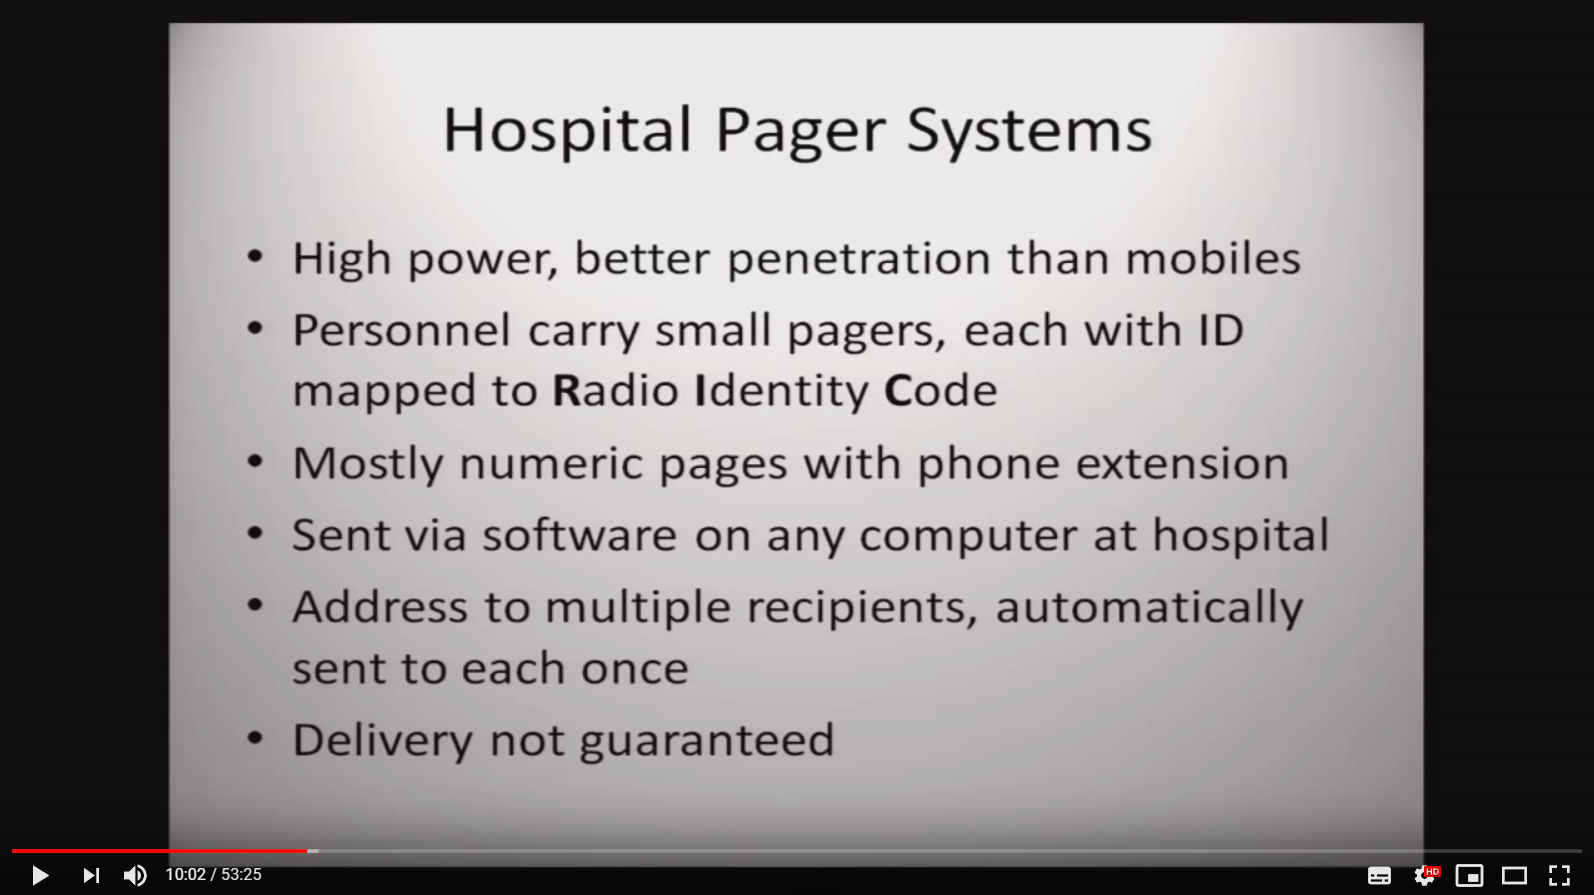 Hospital Pager Systems